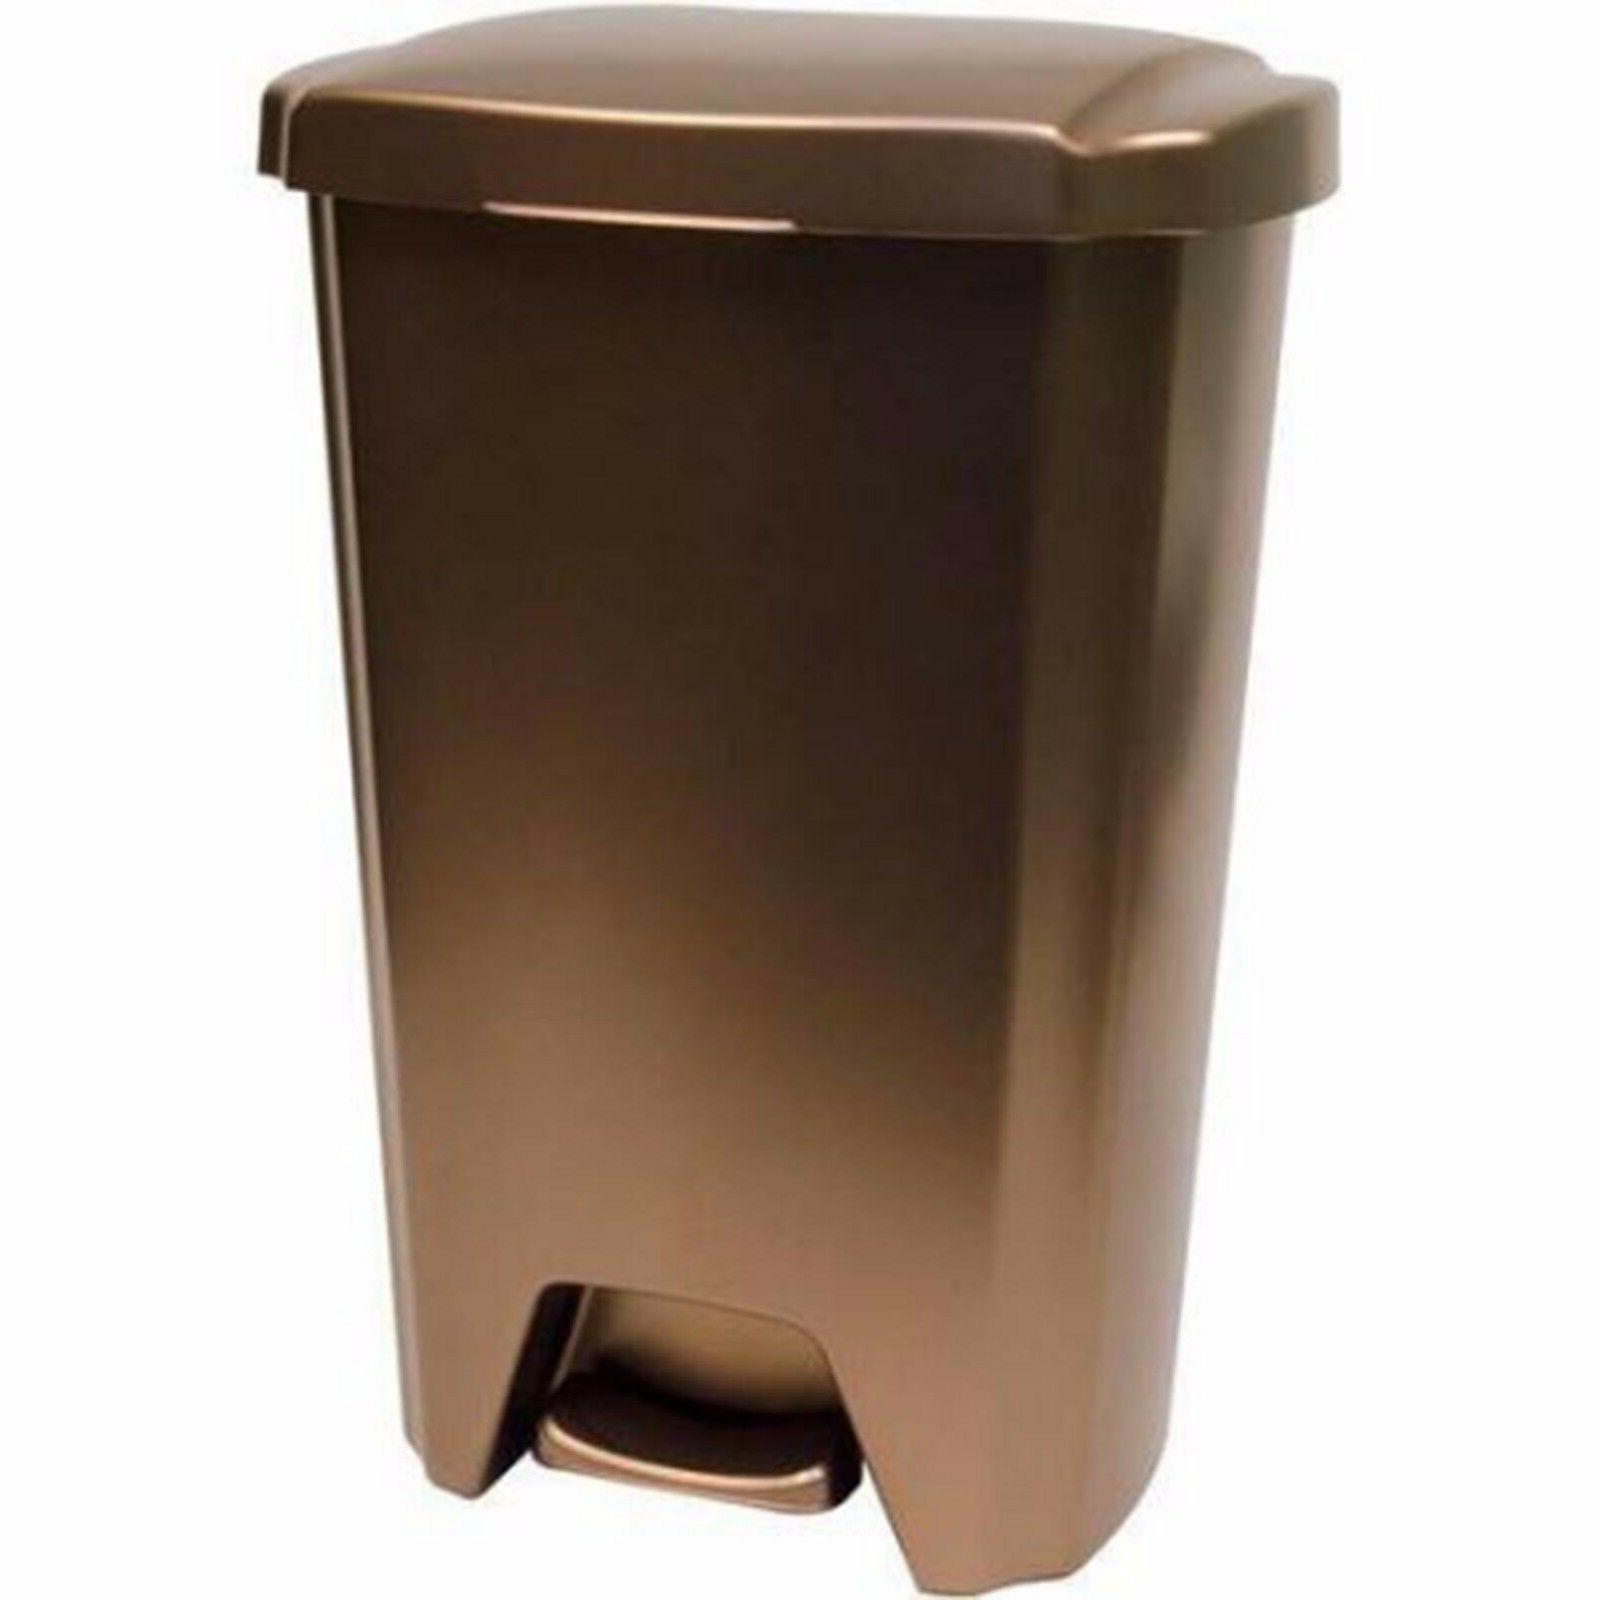 Plastic Can Garbage Bin Waste 13 Trash Kitchen Basket